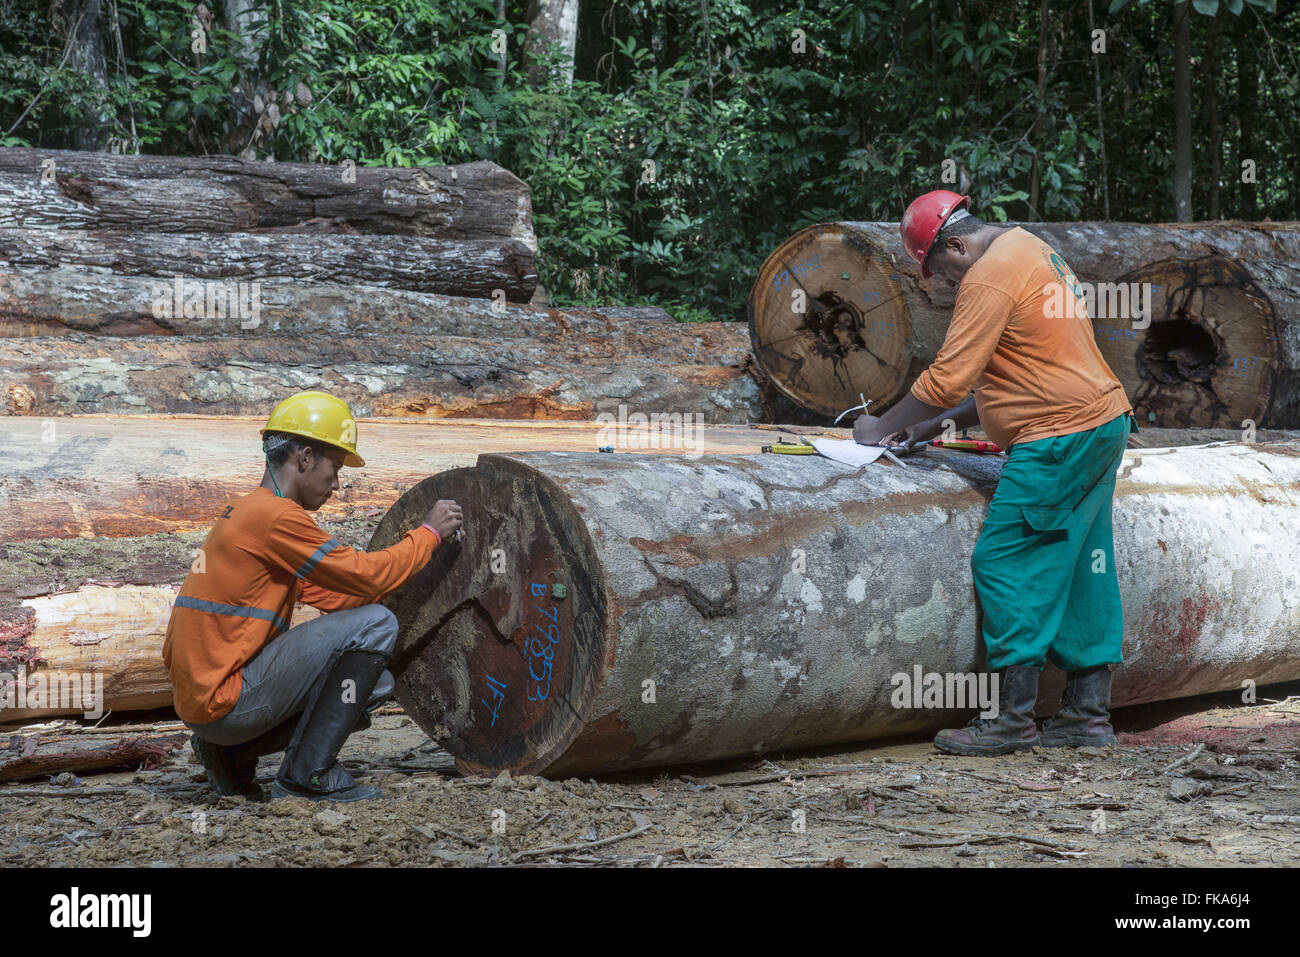 Officials wood extraction company for forest management system - Stock Image